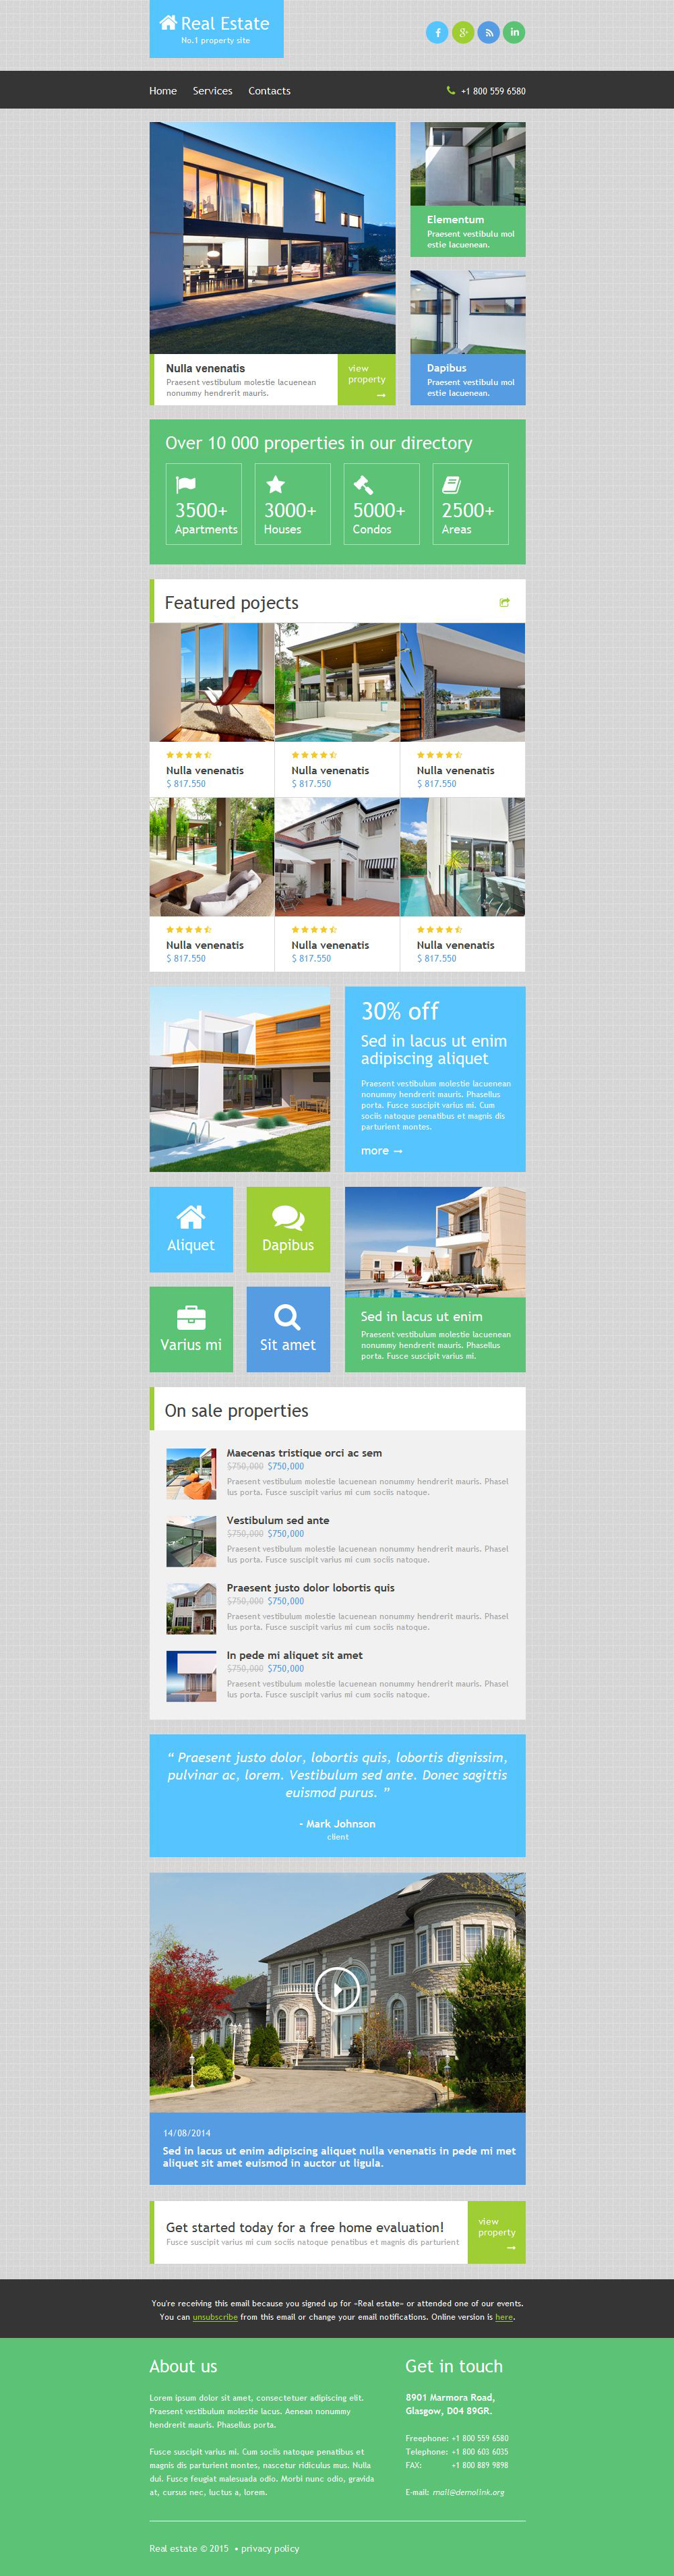 Real Estate Agency Responsive Newsletter Template 52885 – Real Estate Newsletter Template